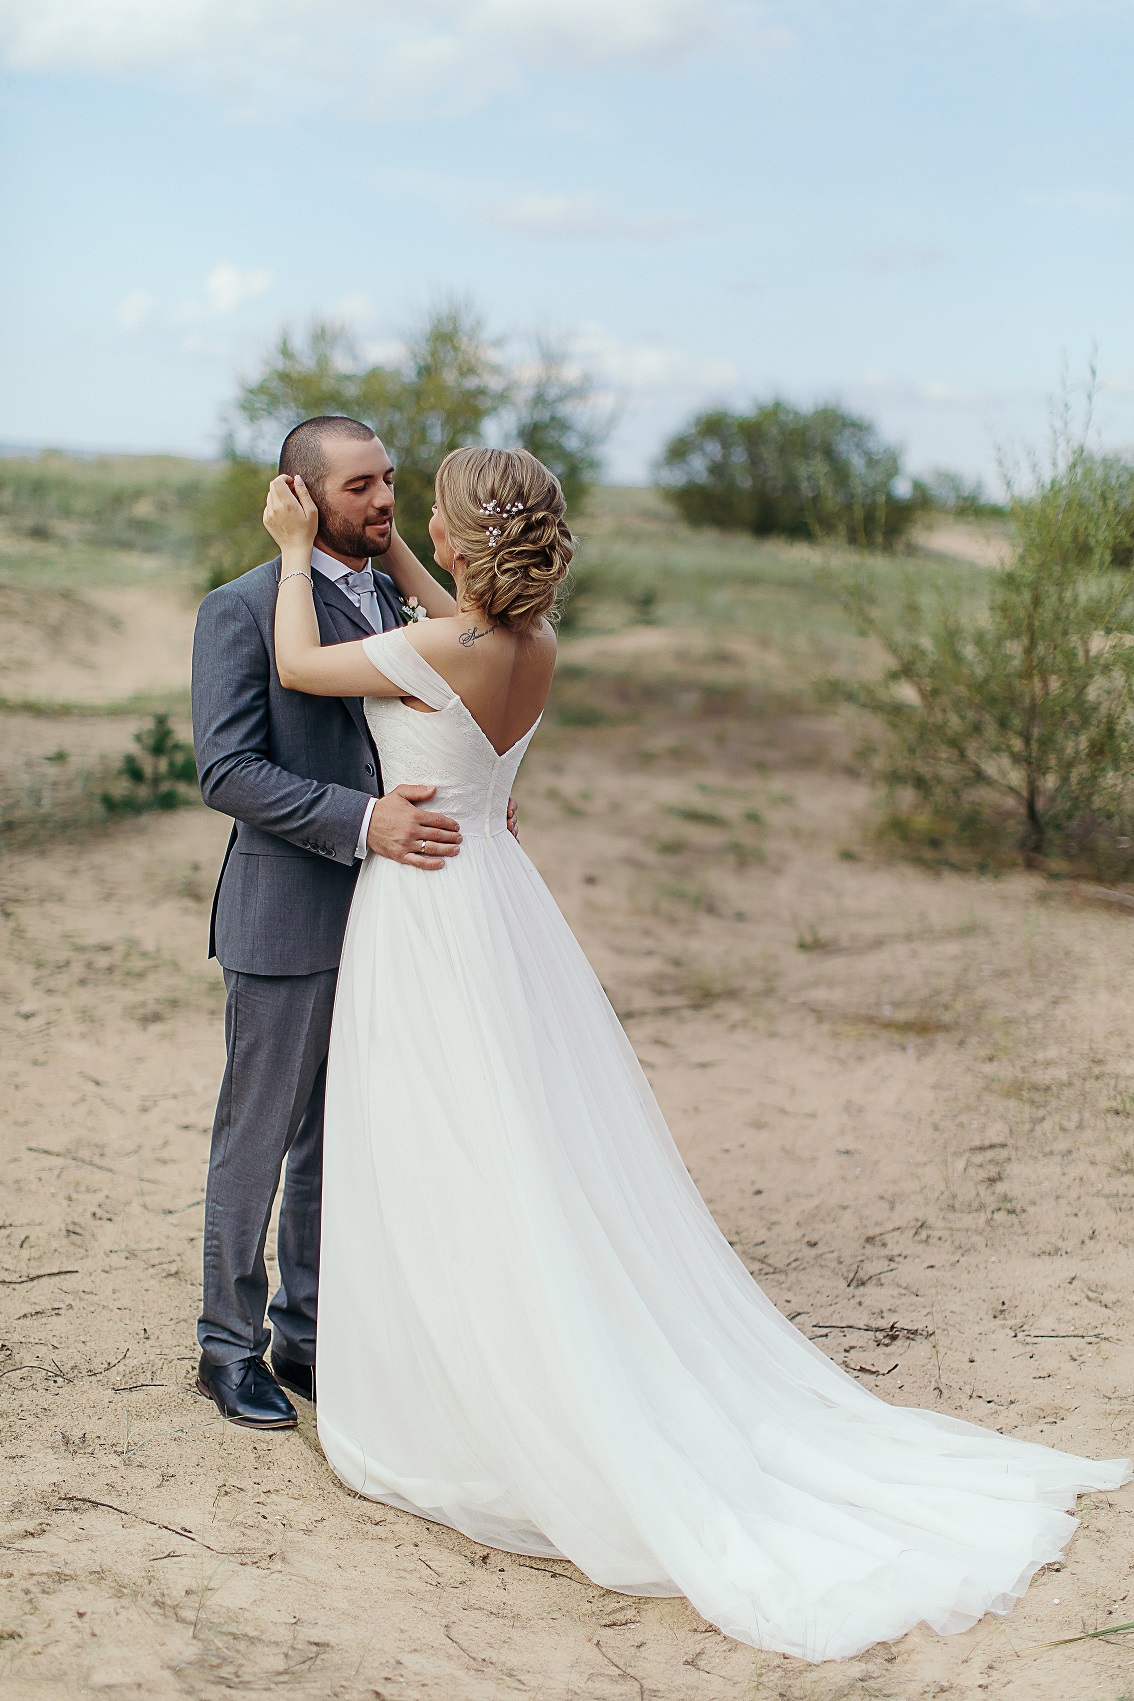 Bride Anna and Groom Levan share a first look moment showcasing the back of the bride's dress